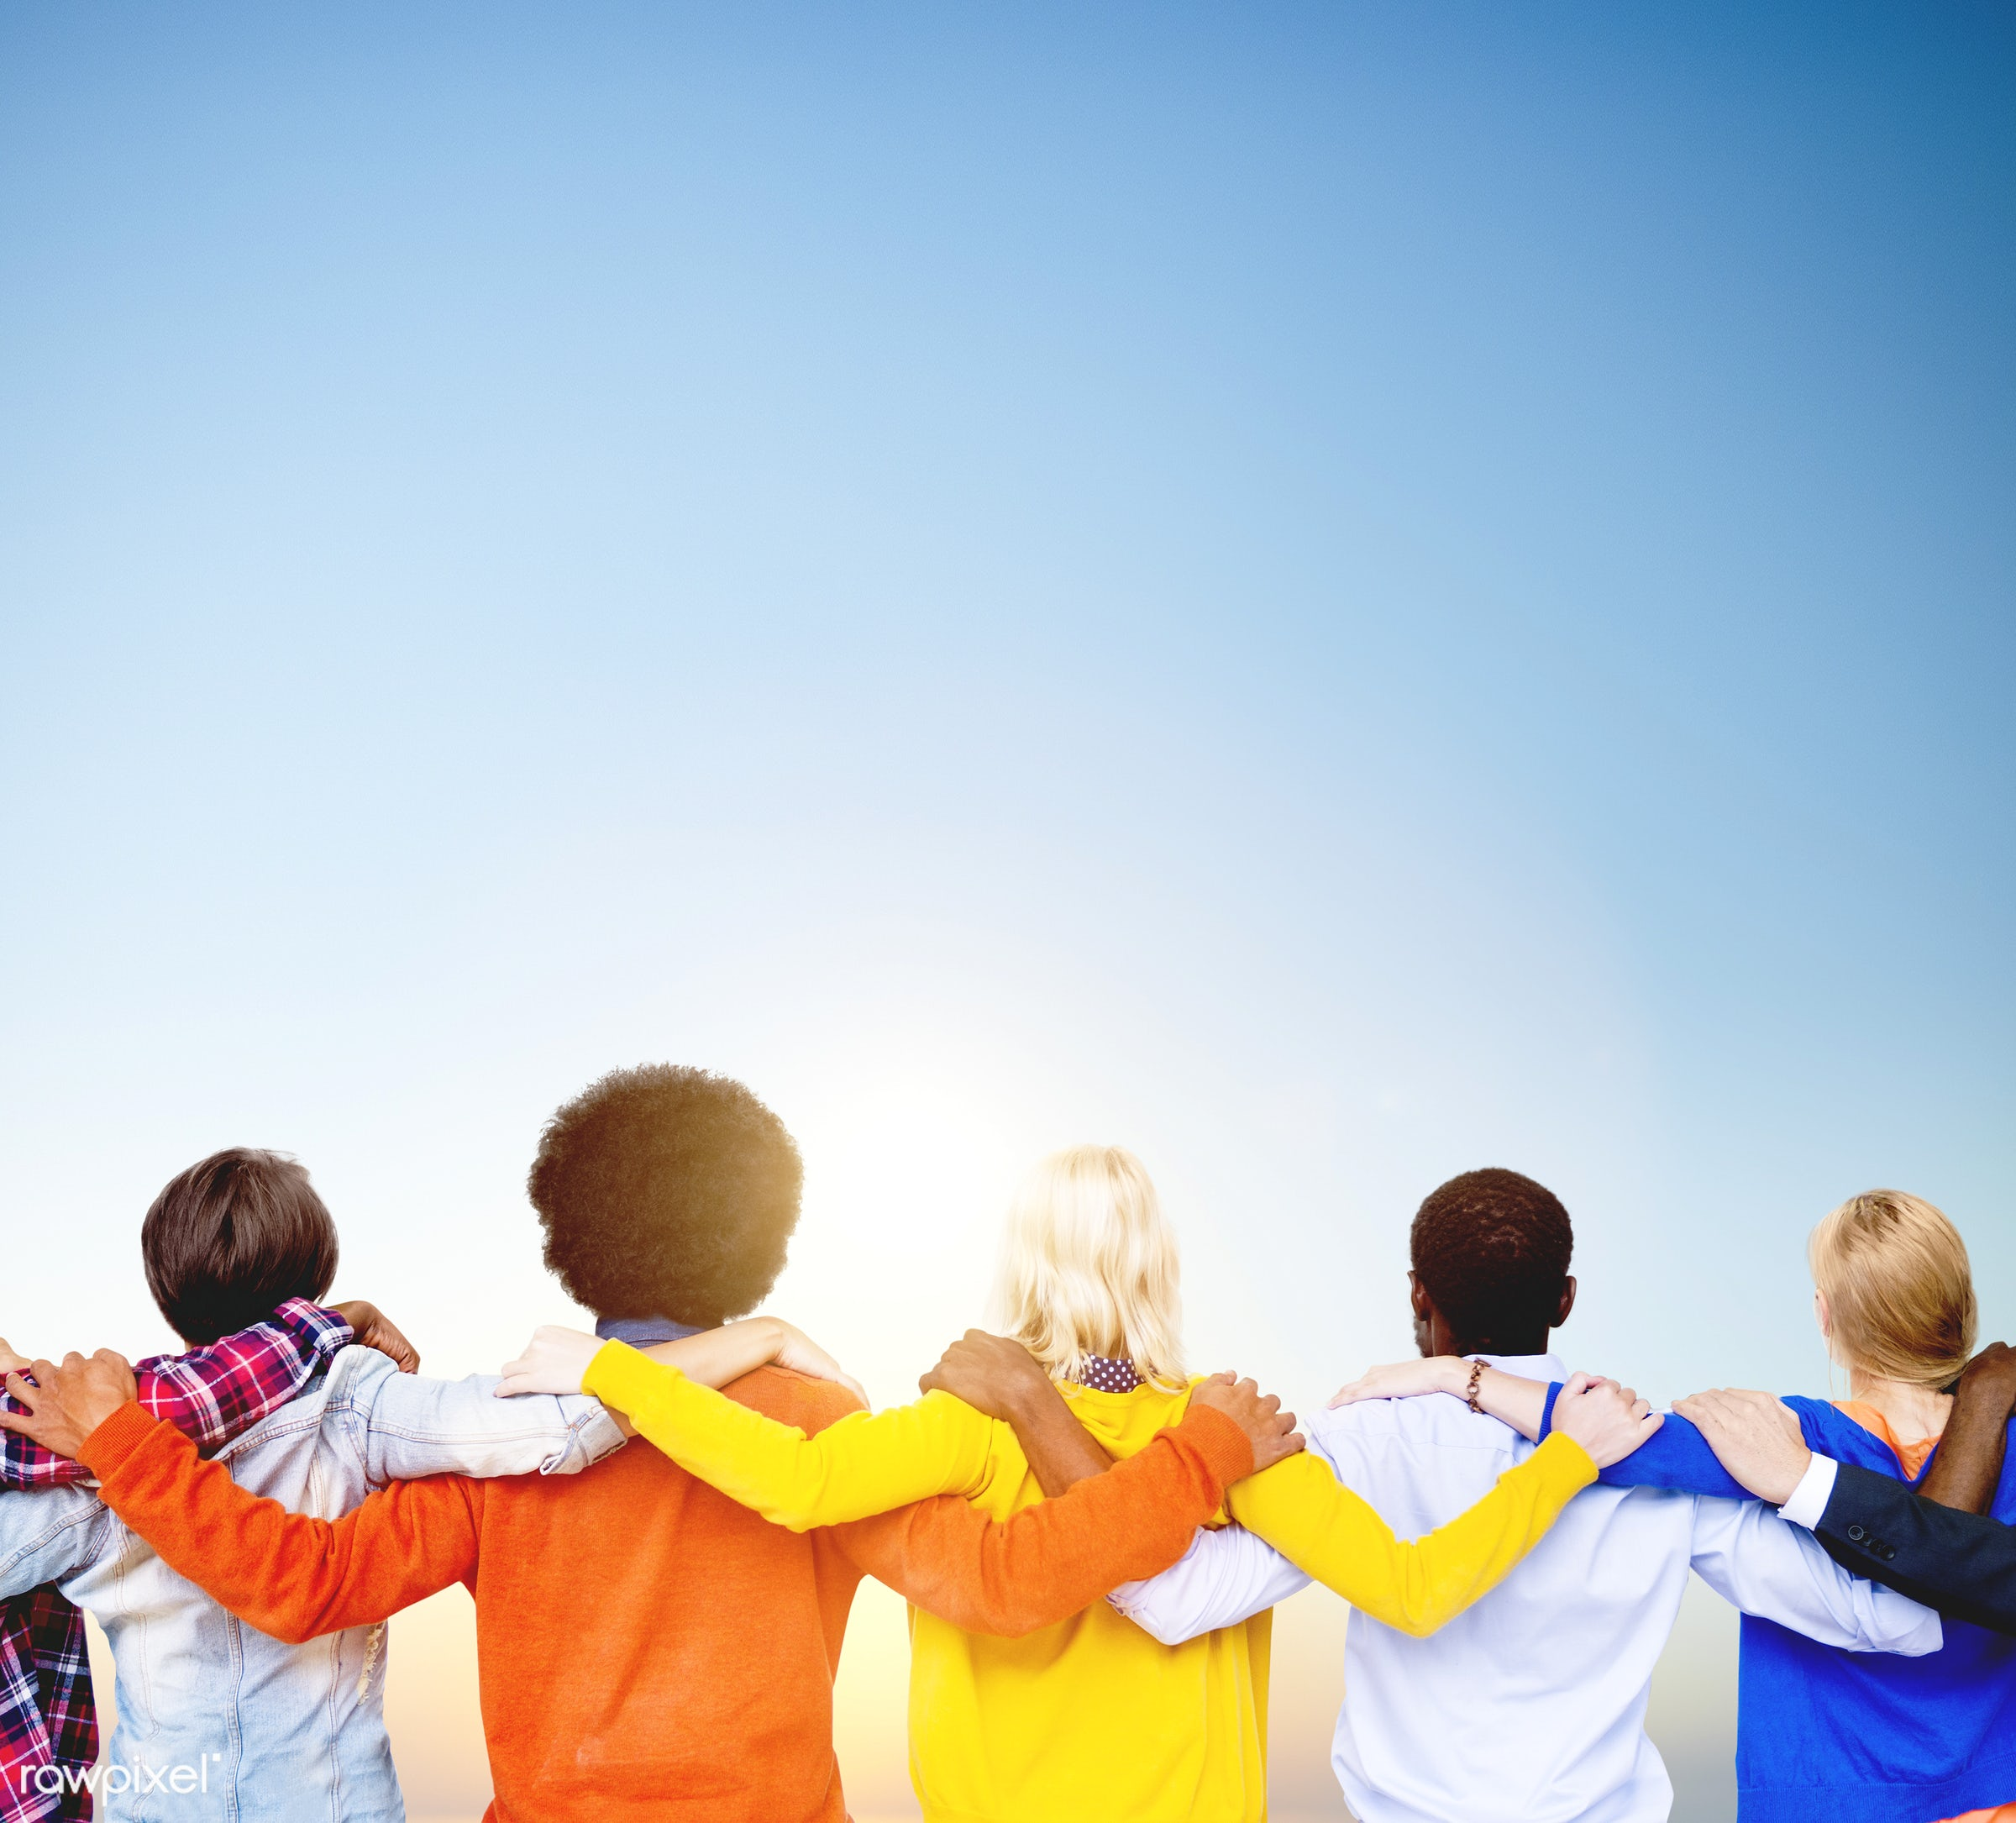 adult, african descent, arm around, back view, background, blue, casual, caucasian, cheerful, collaboration, colorful,...